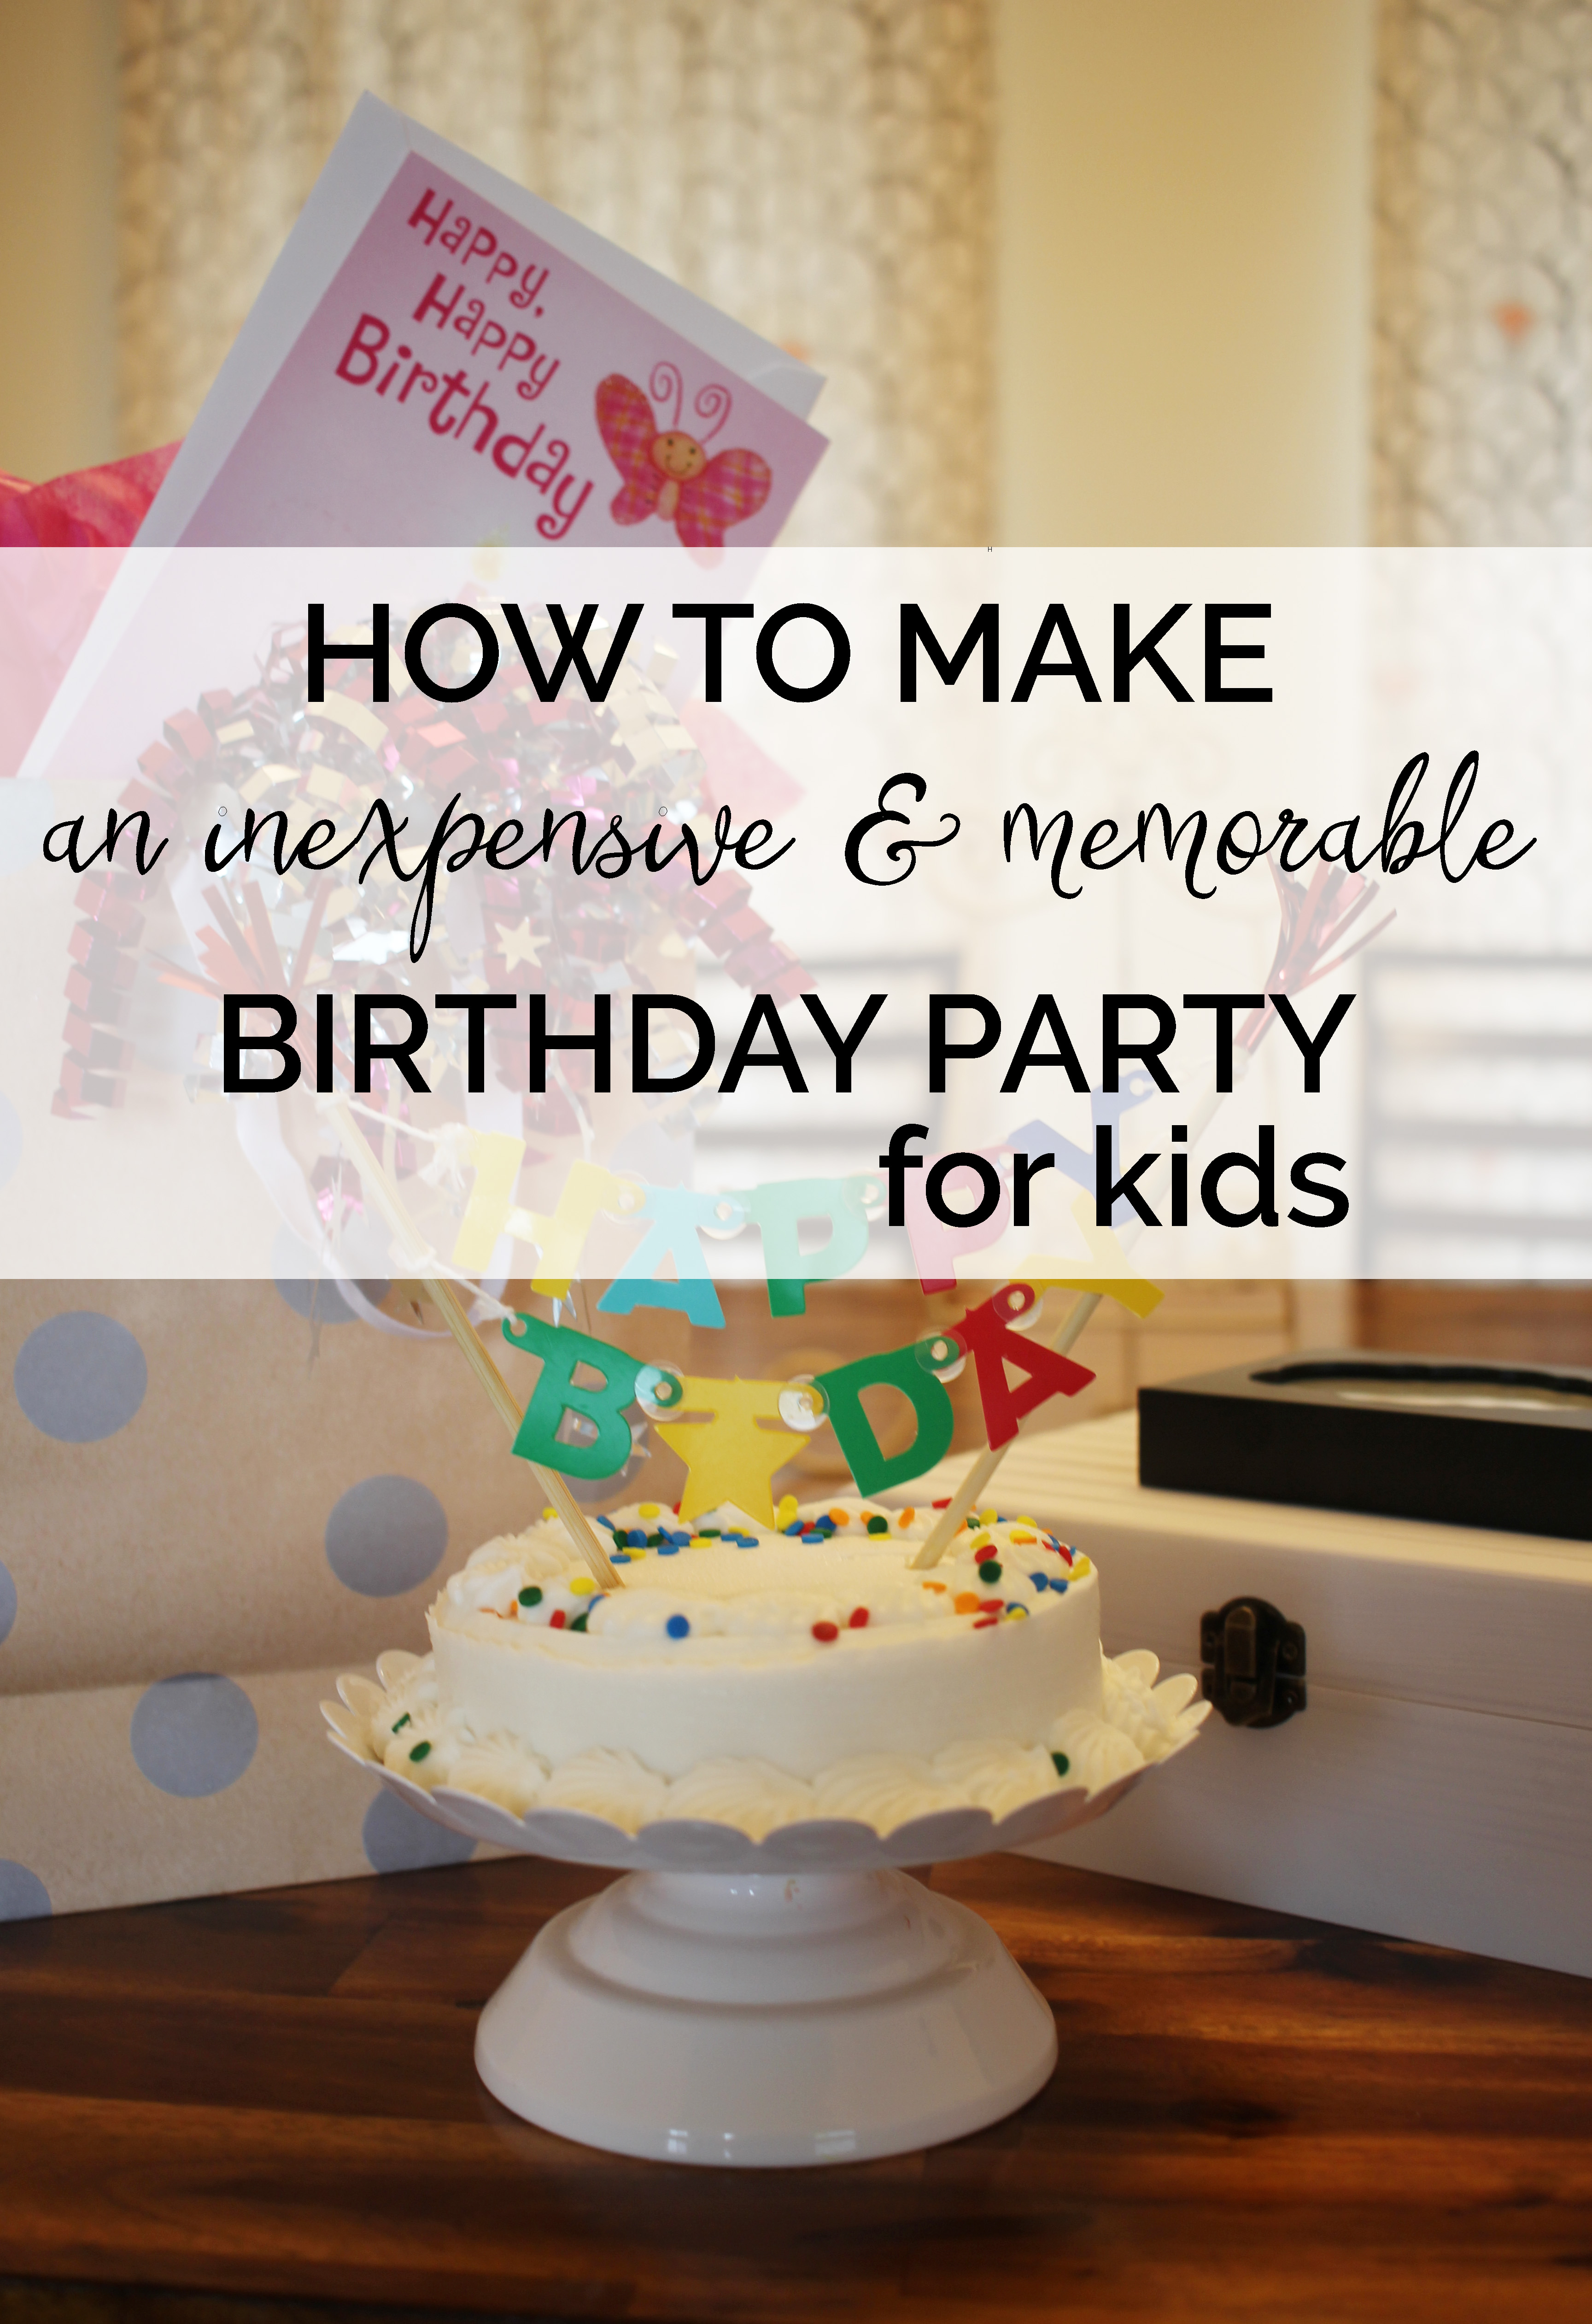 How to Have a Memorable Birthday